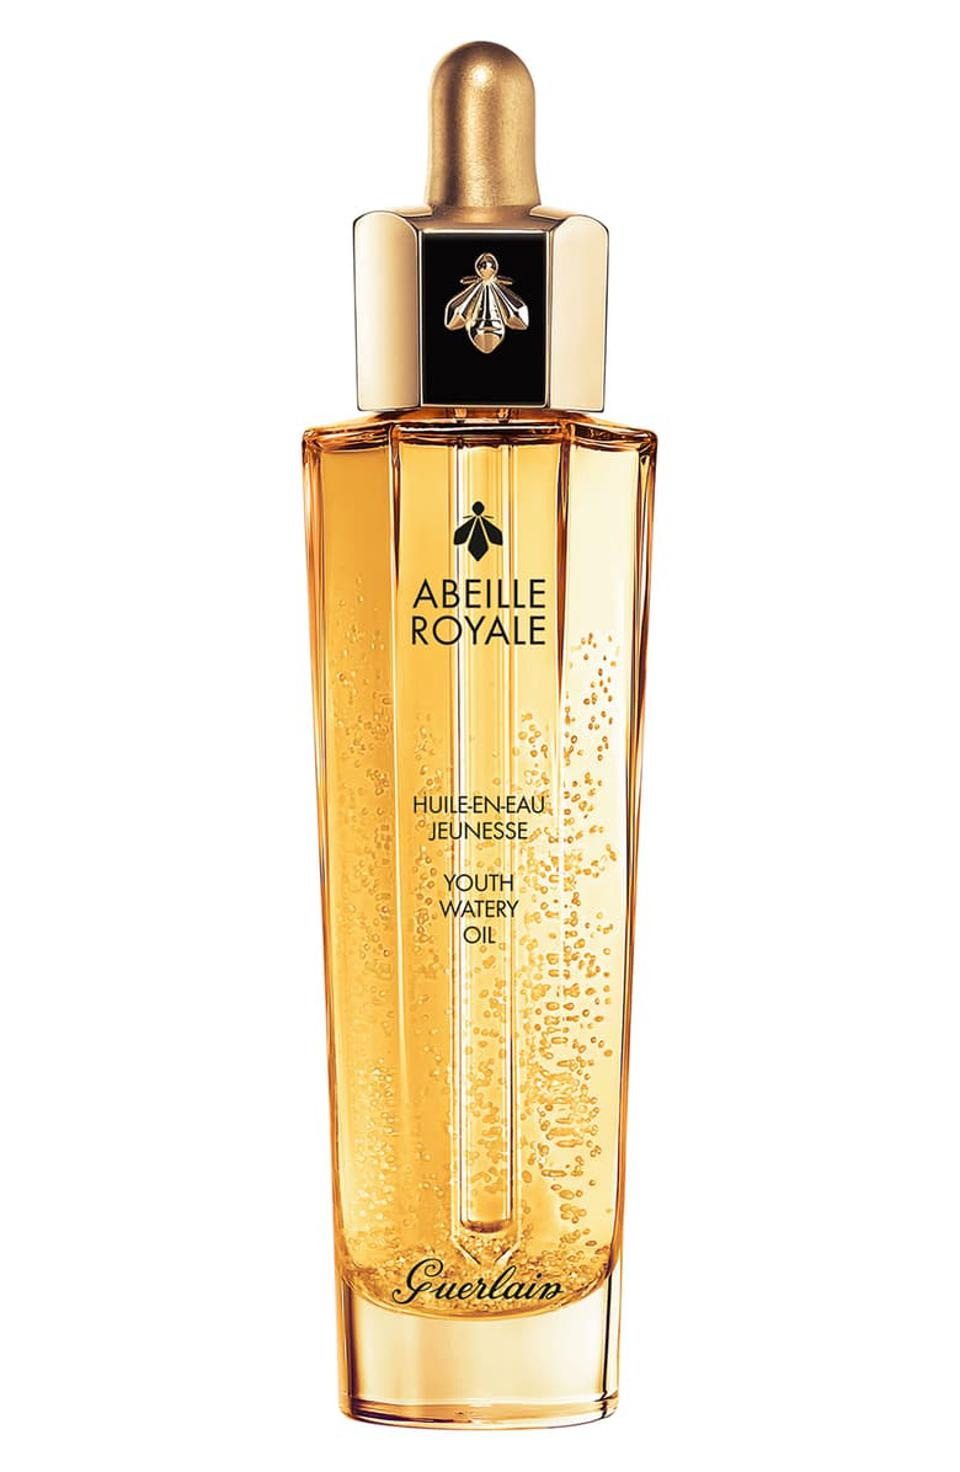 Abeille Royale Youth Watery Oil from GUERLAIN